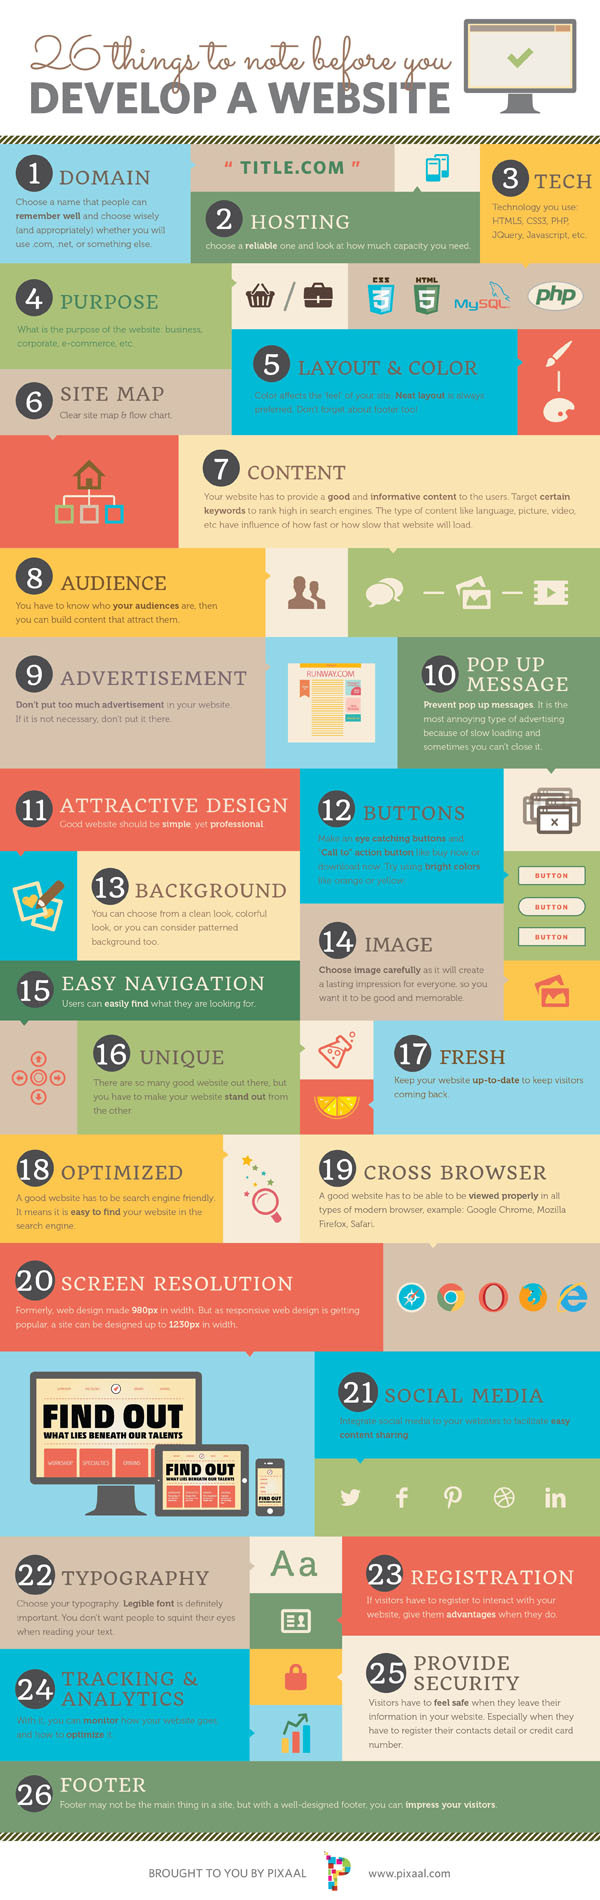 26 Important Tips for Developing a Website